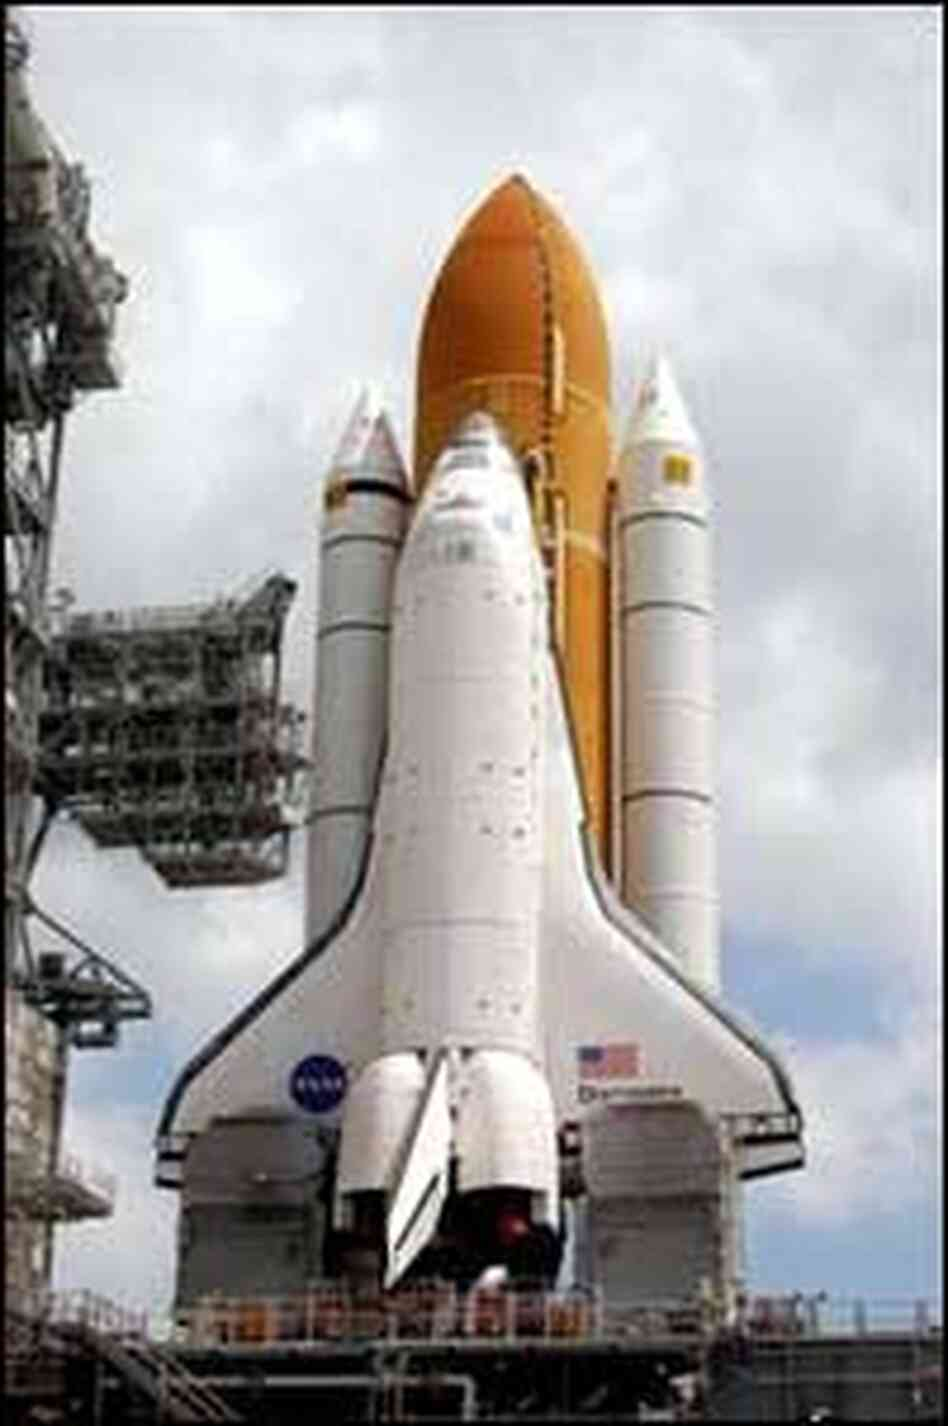 The Space Shuttle Discovery at the launch pad